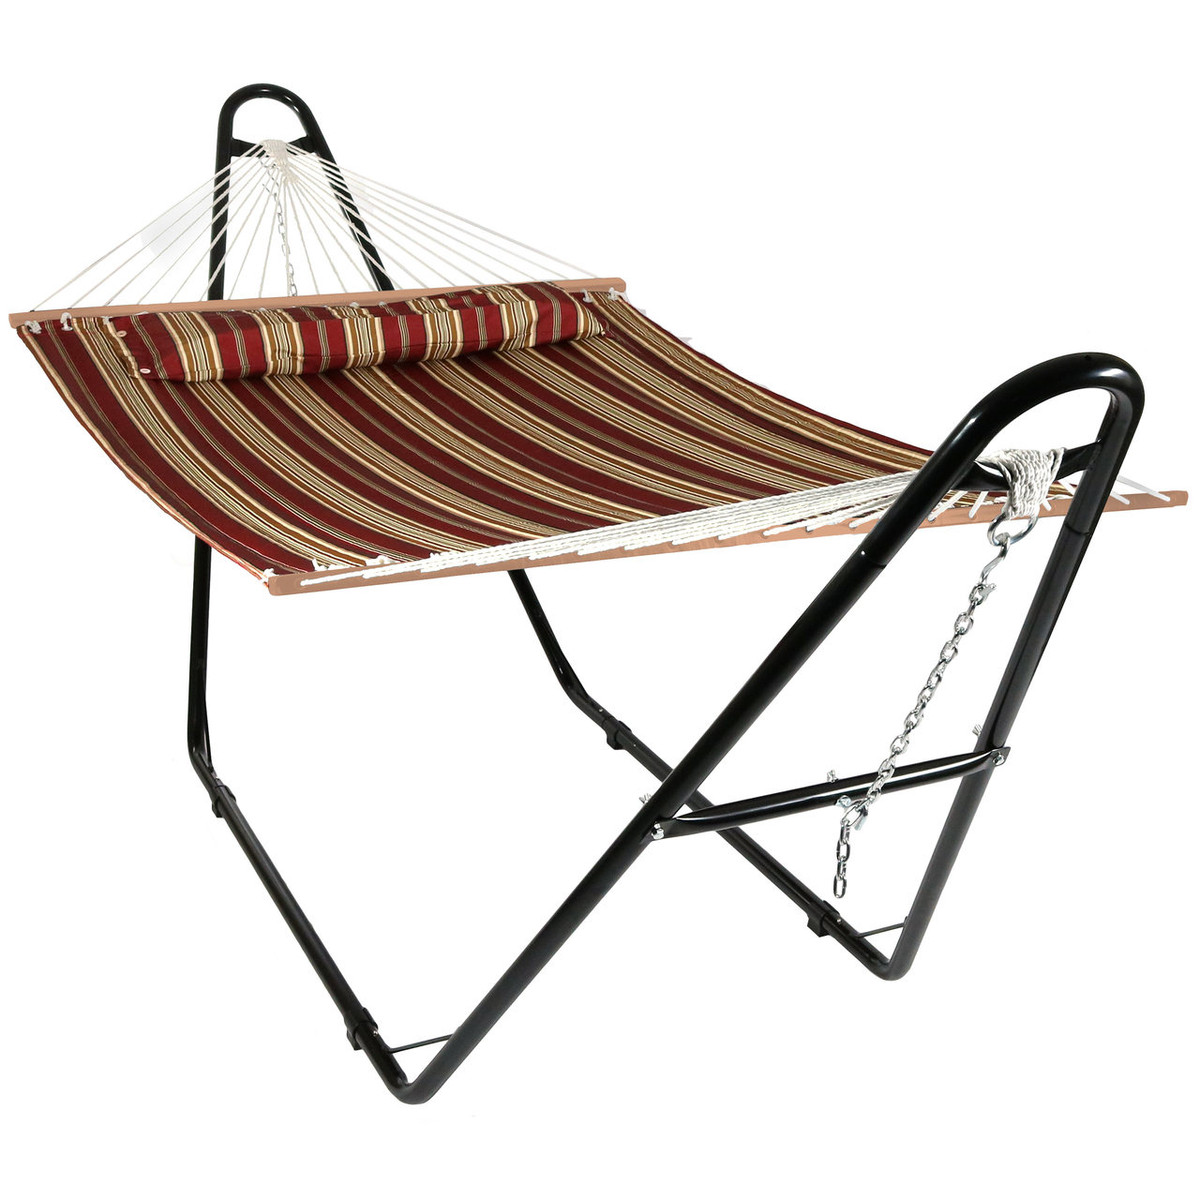 Sunnydaze Deluxe 2-Person Hammock with Spreader Bars and 15-Foot Stand, 400-Pound Capacity, American Style